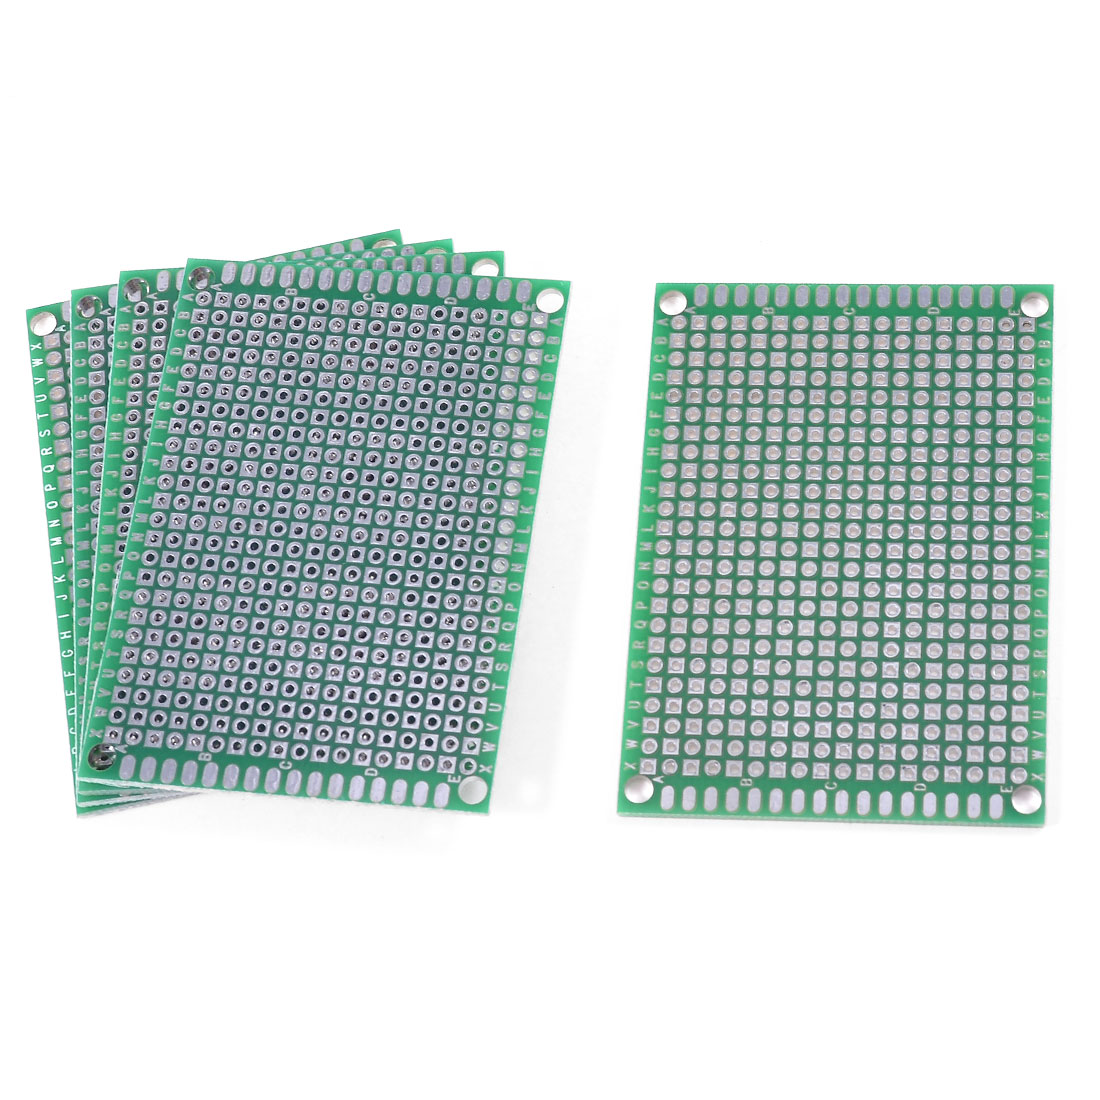 5 Pcs 5cm x 7cm Double Sided Prototype Universal PCB Circuit Board